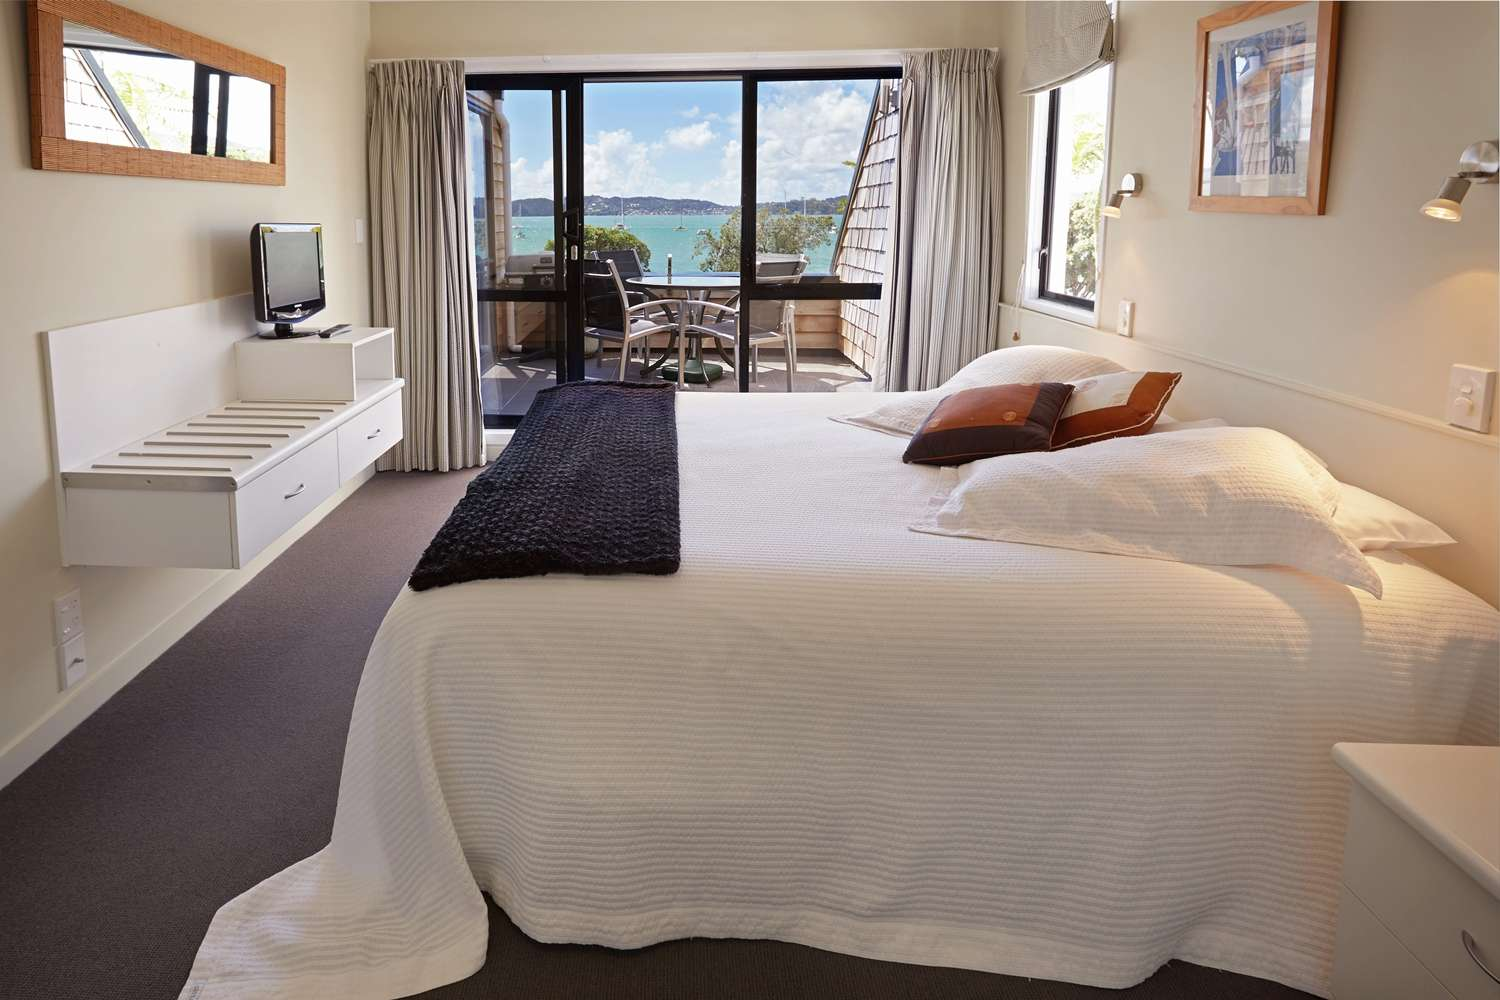 pioneer-apartments-waterfront-penthouse-paihia-accommodation.jpg